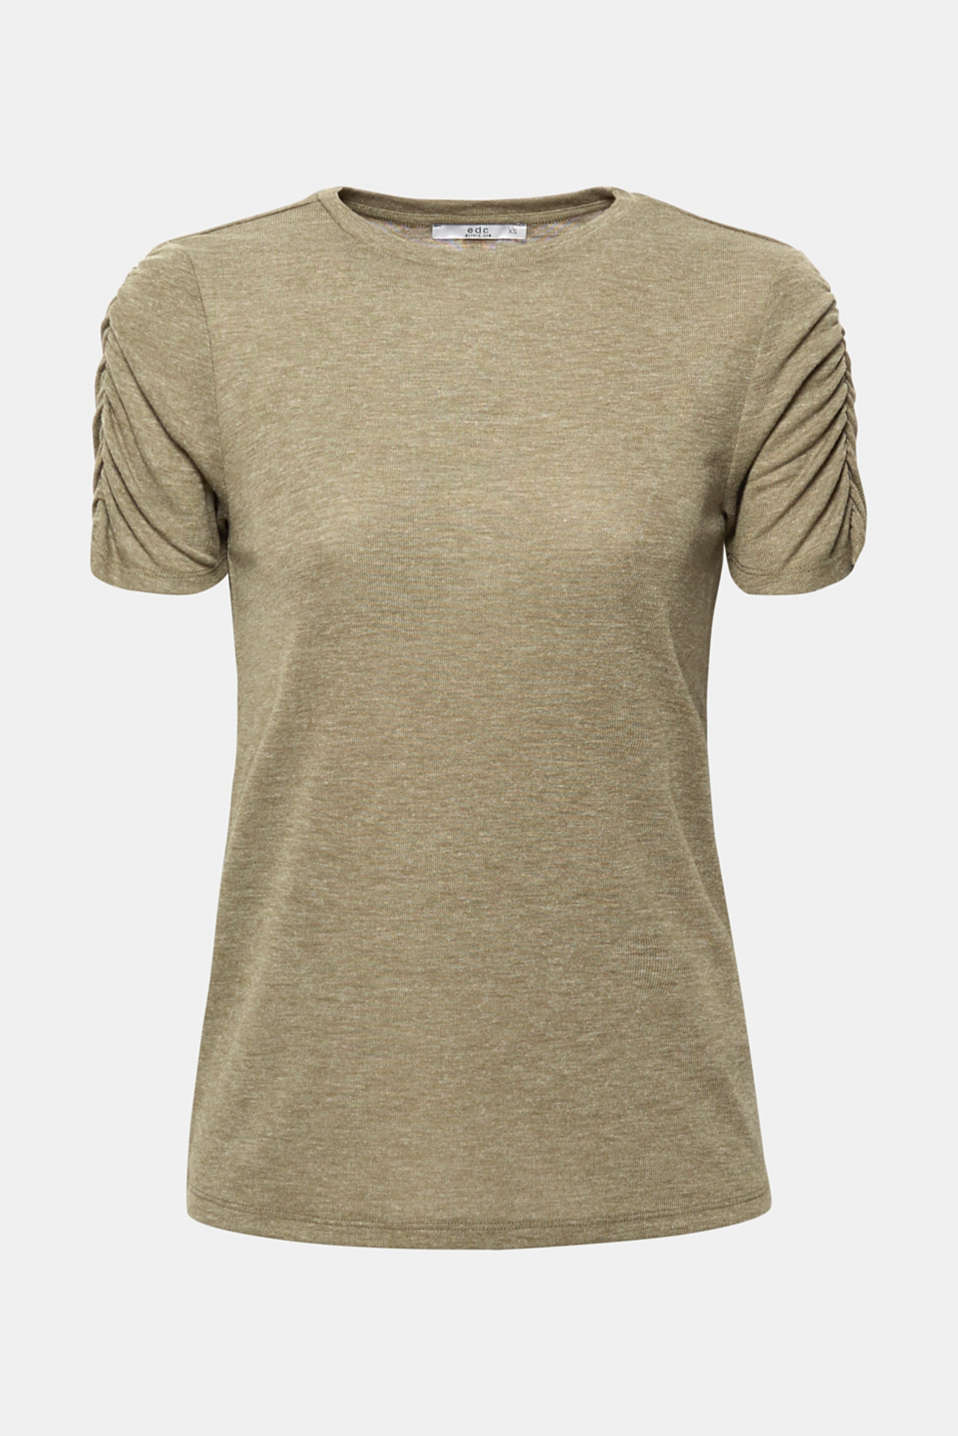 T-shirt with gathered sleeves, KHAKI GREEN 5, detail image number 5